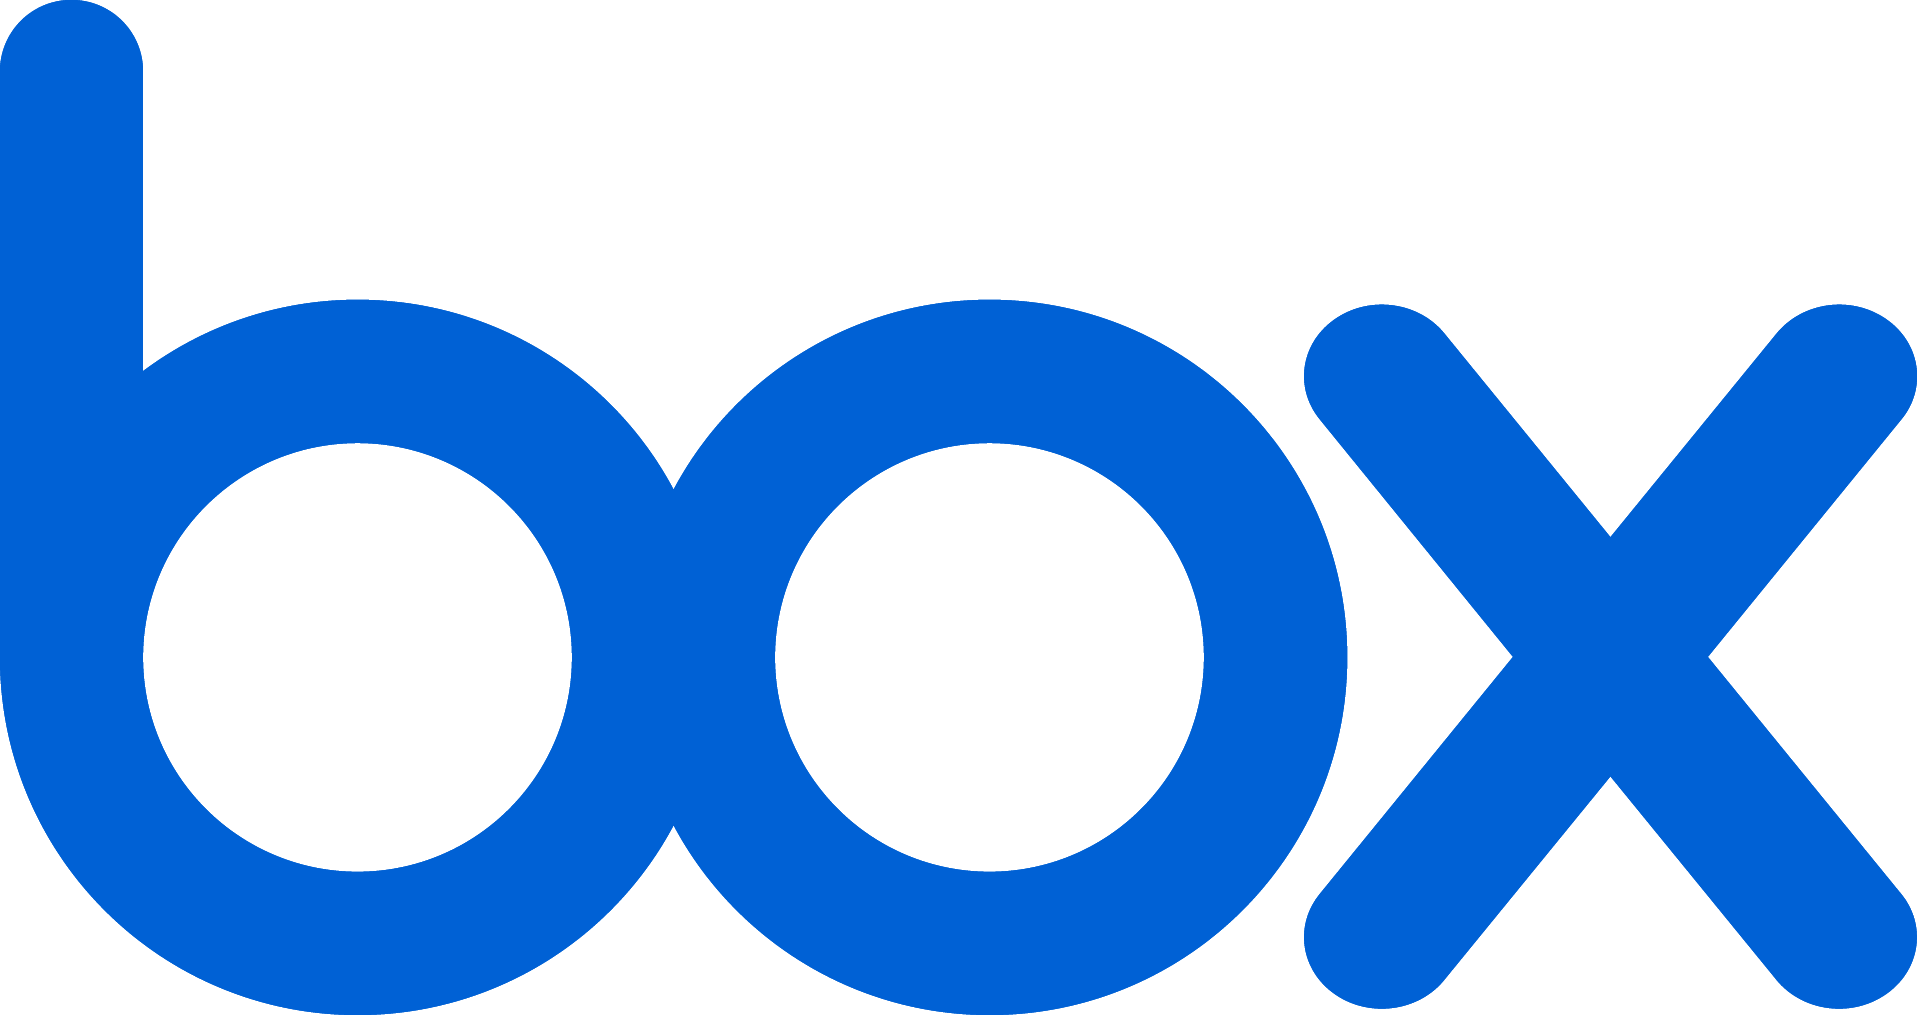 logo - box - big